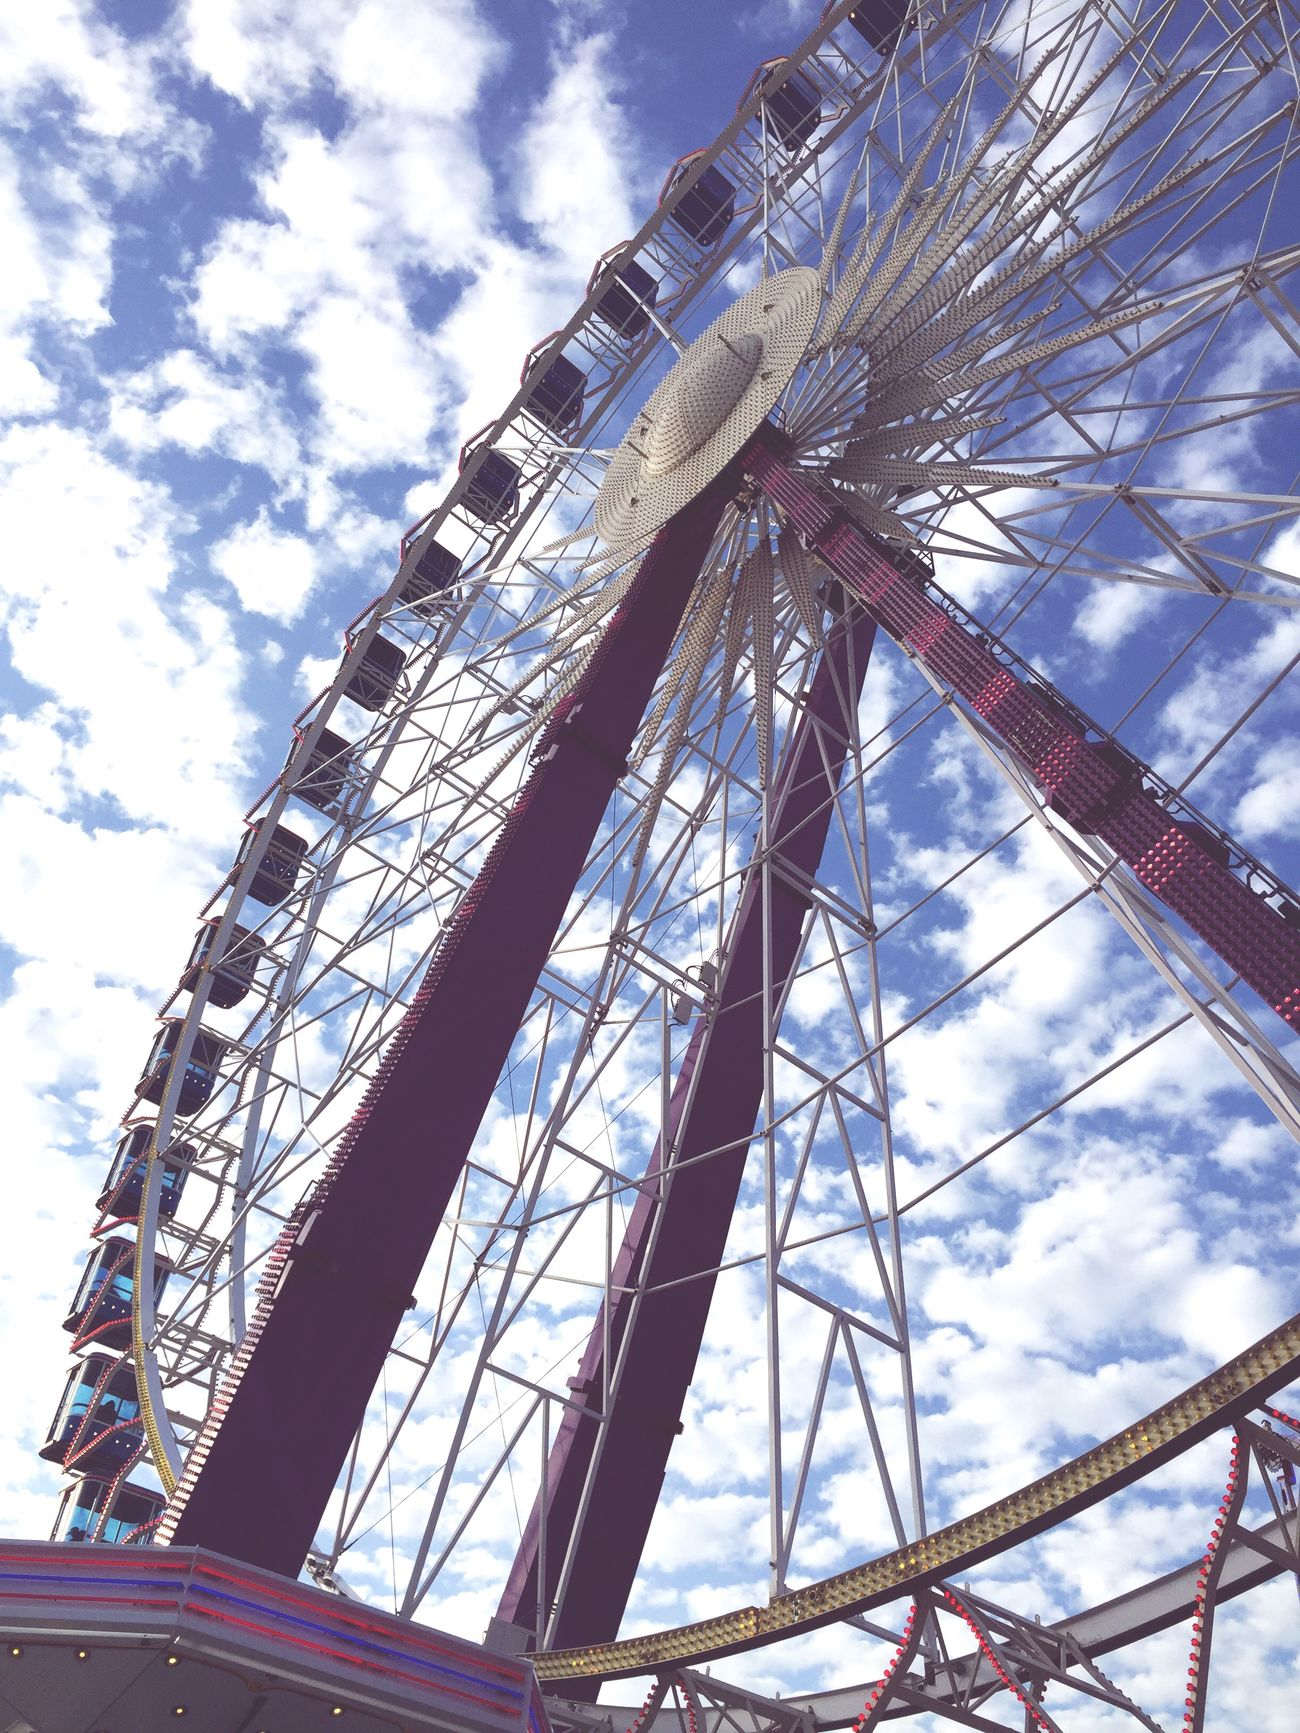 Fairground Fairground Crange  Festival Ruhrgebiet Germany NRW Riesenrad Ferris Wheel Sky Low Angle View Cloud - Sky Outdoors Blue Carnival Crowds And Details